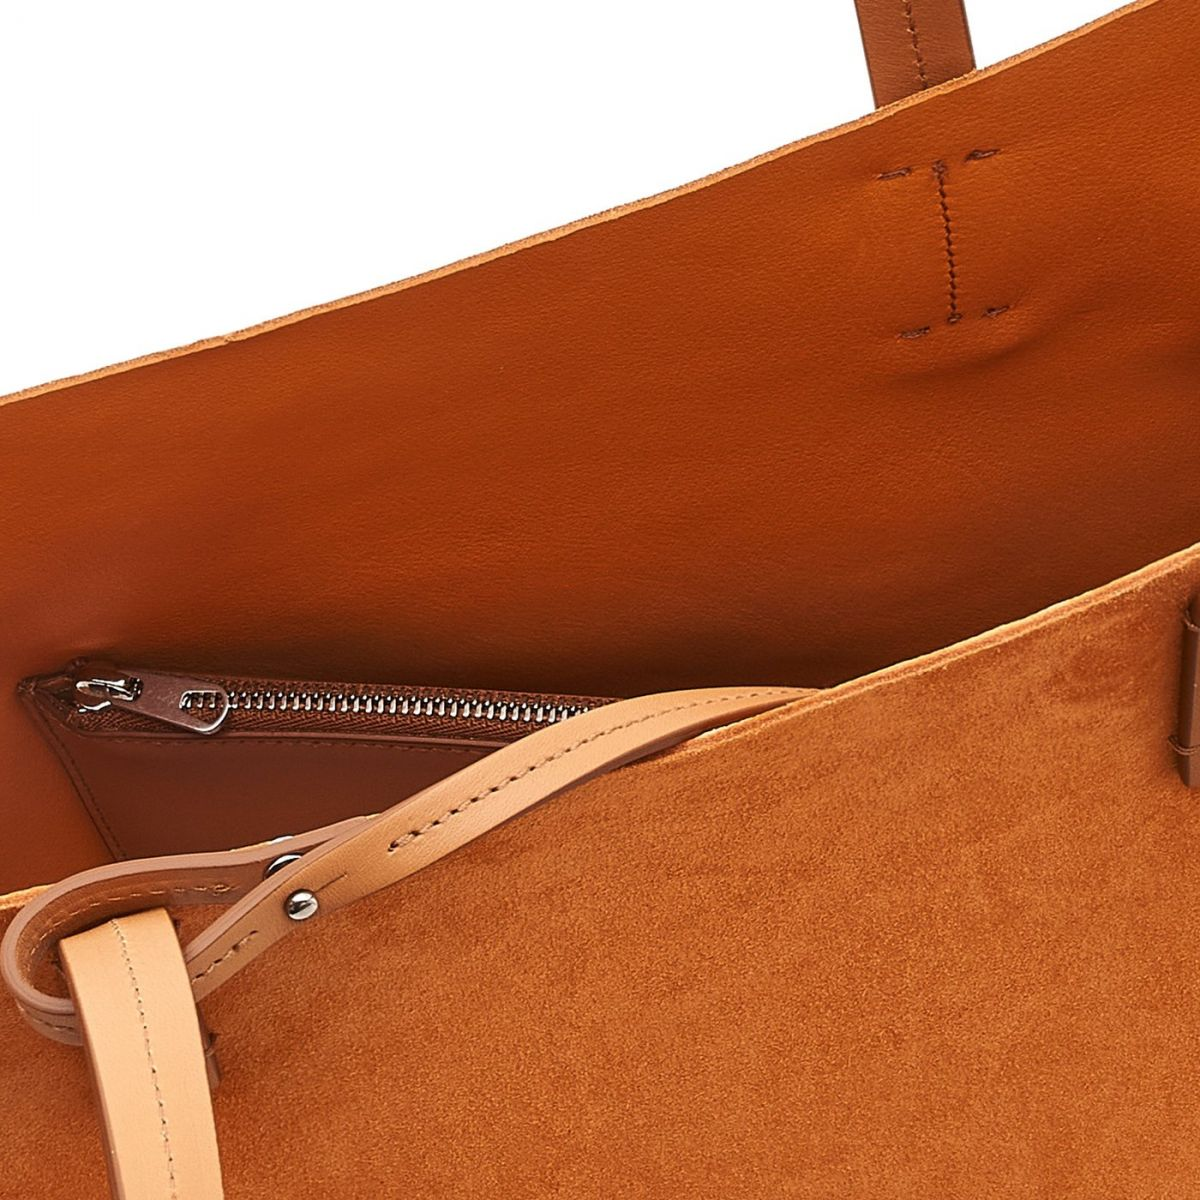 Elba Shopping - Women's Tote Bag in Suede/Vegetable Tanned Cowhide Leather color Brown - Mediterranea line BTO110 | Details